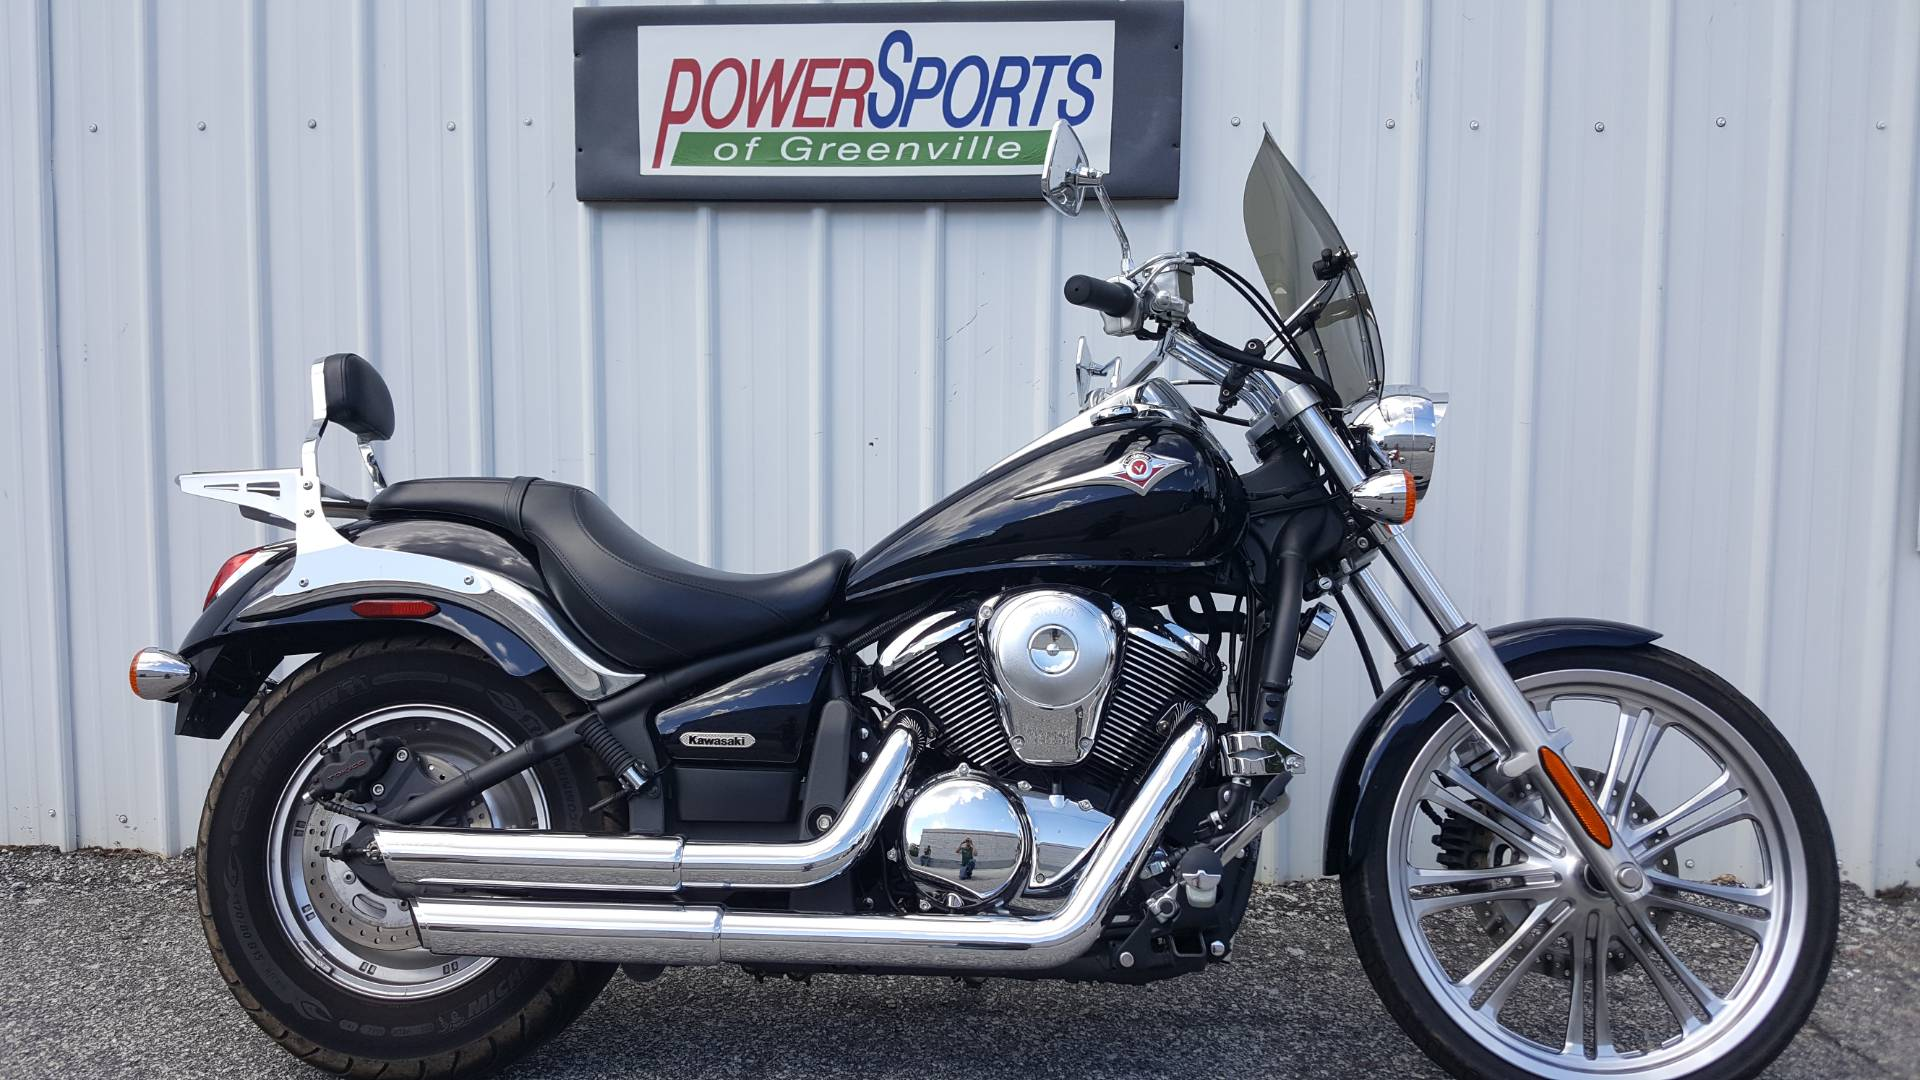 2009 Kawasaki VulcanR 900 Custom In Greenville South Carolina